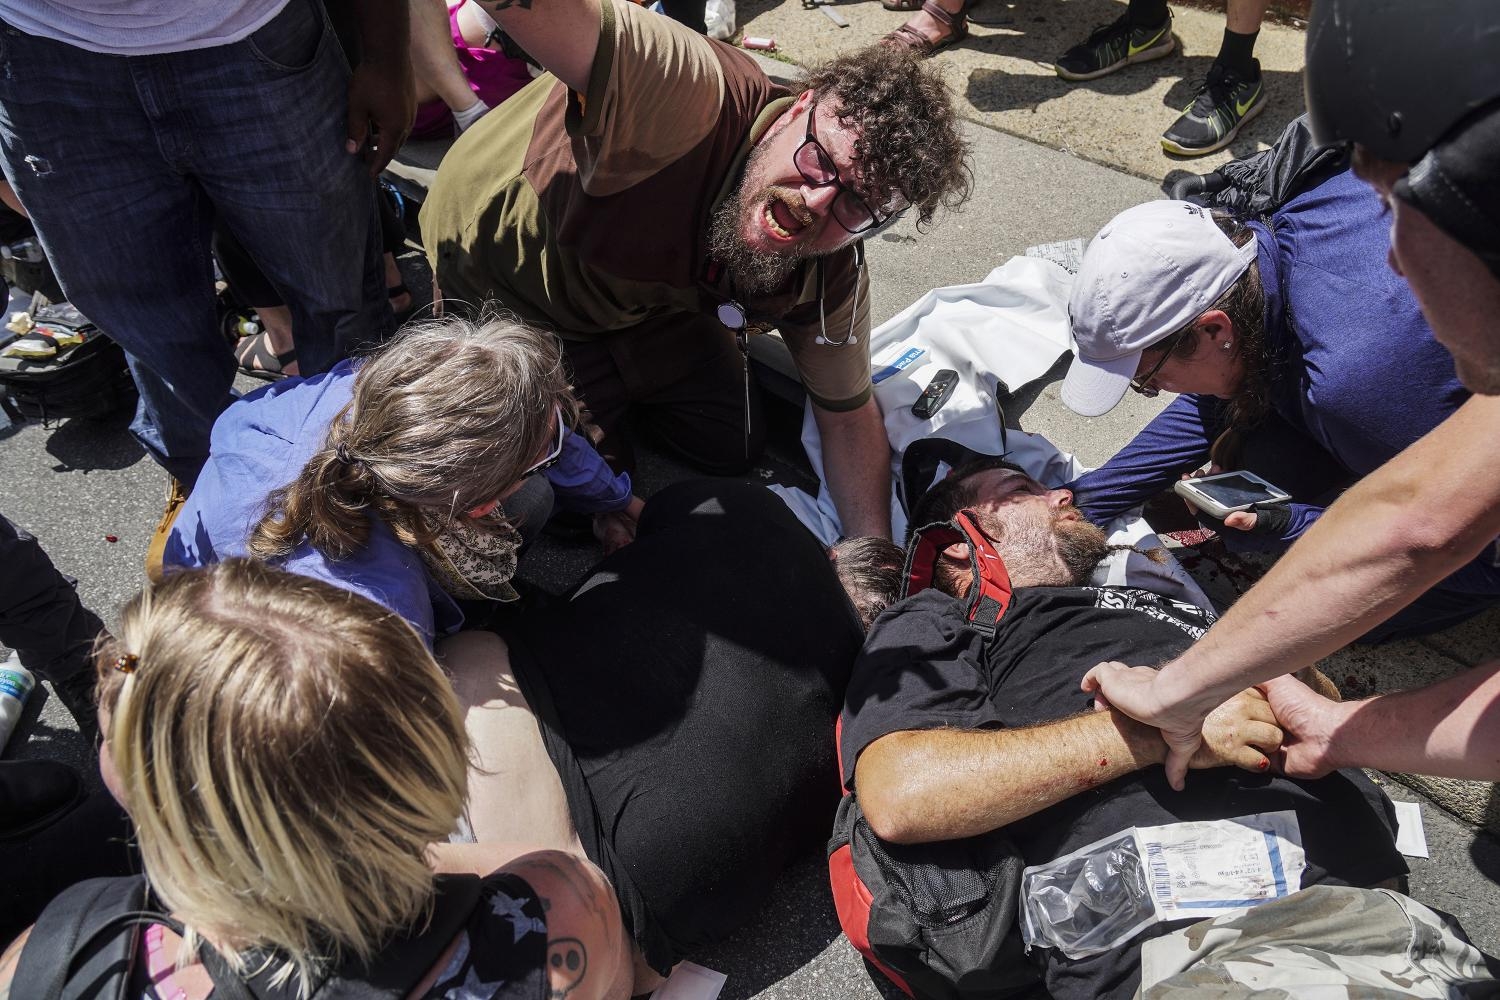 The aftermath of a collision involving white nationalist protestors in Charlottesville, Virginia, on Saturday. University President Morton Schapiro expressed disgust over those actions and the response by President Donald Trump.